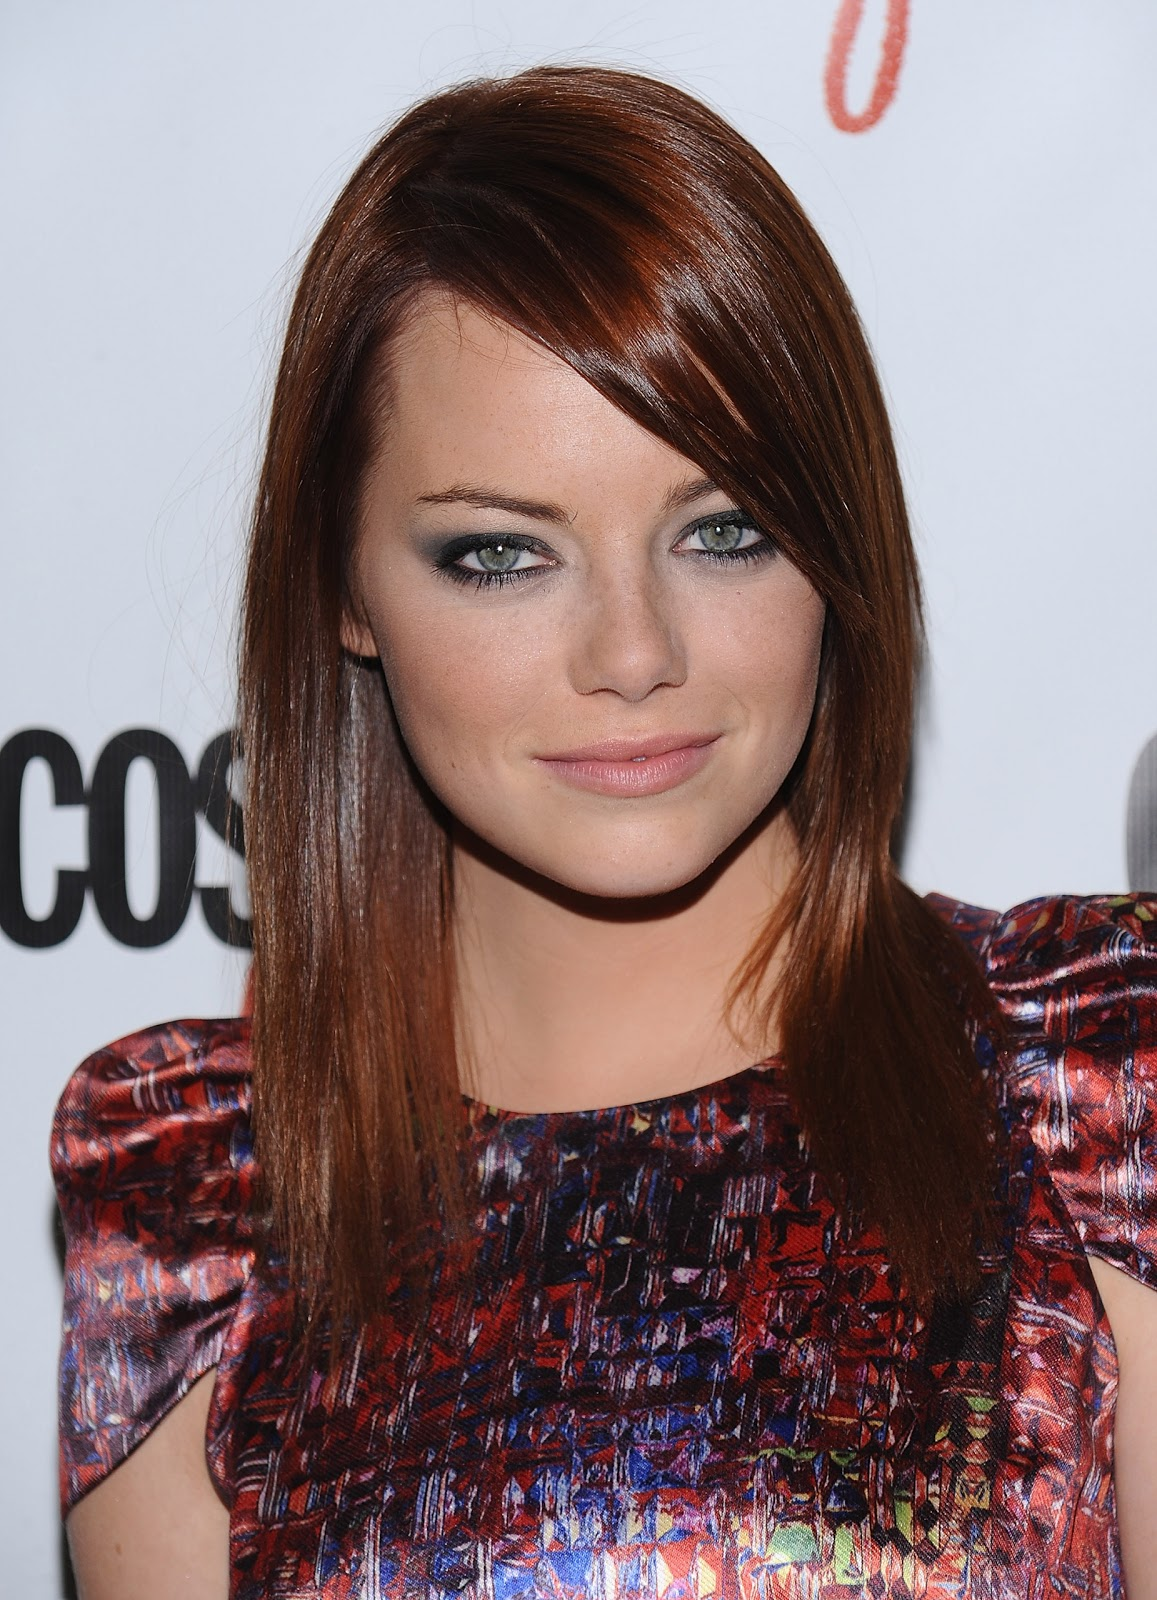 Emma Stone's Best Red Carpet Hair and Makeup Looks - Teen ...